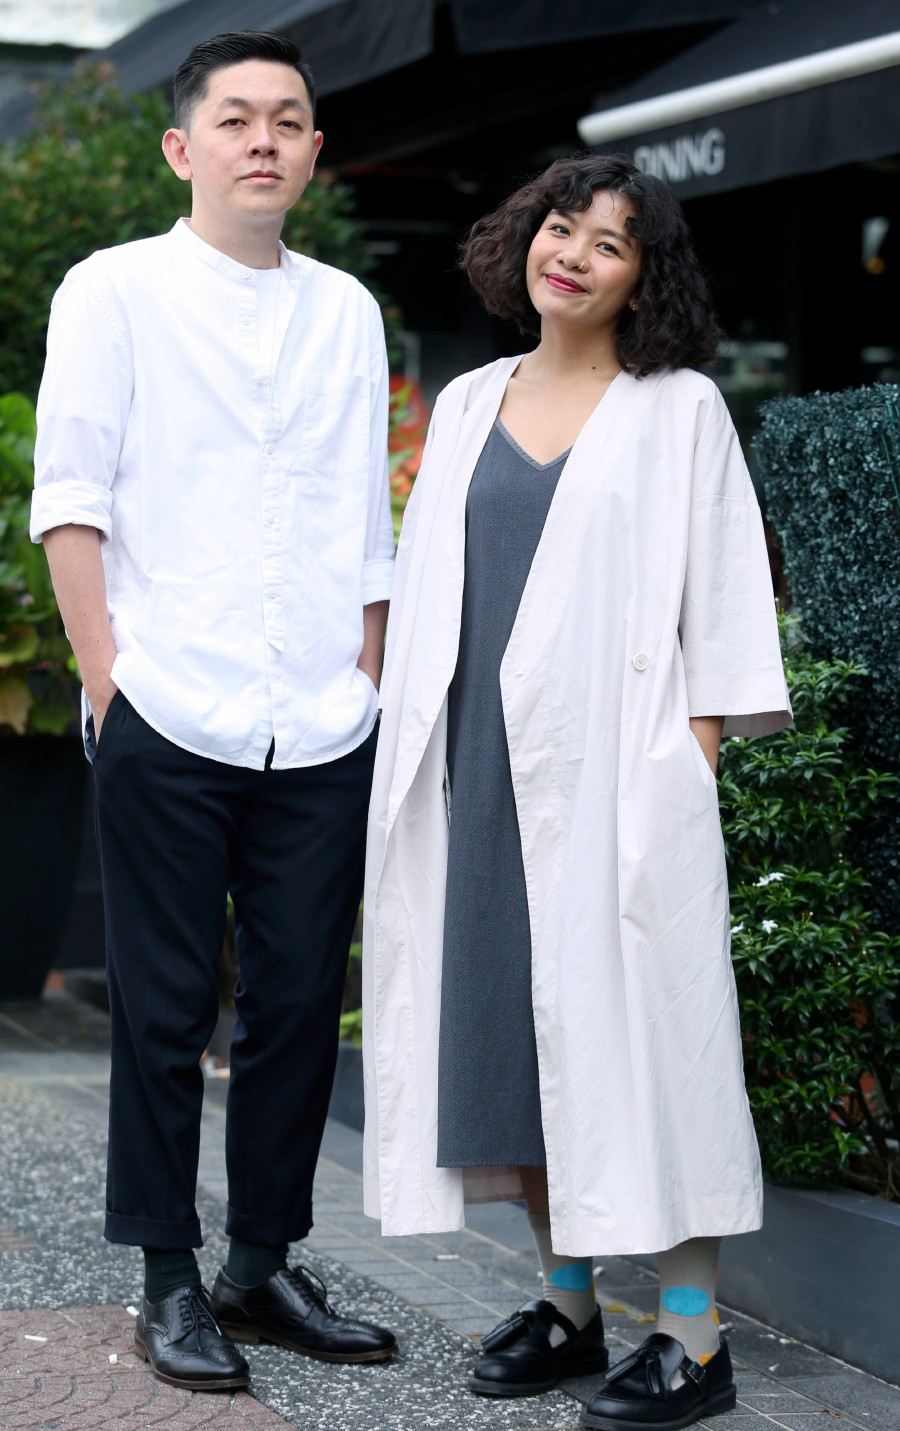 Wong (left) and Kweok, the couple behind Goodpair Socks.